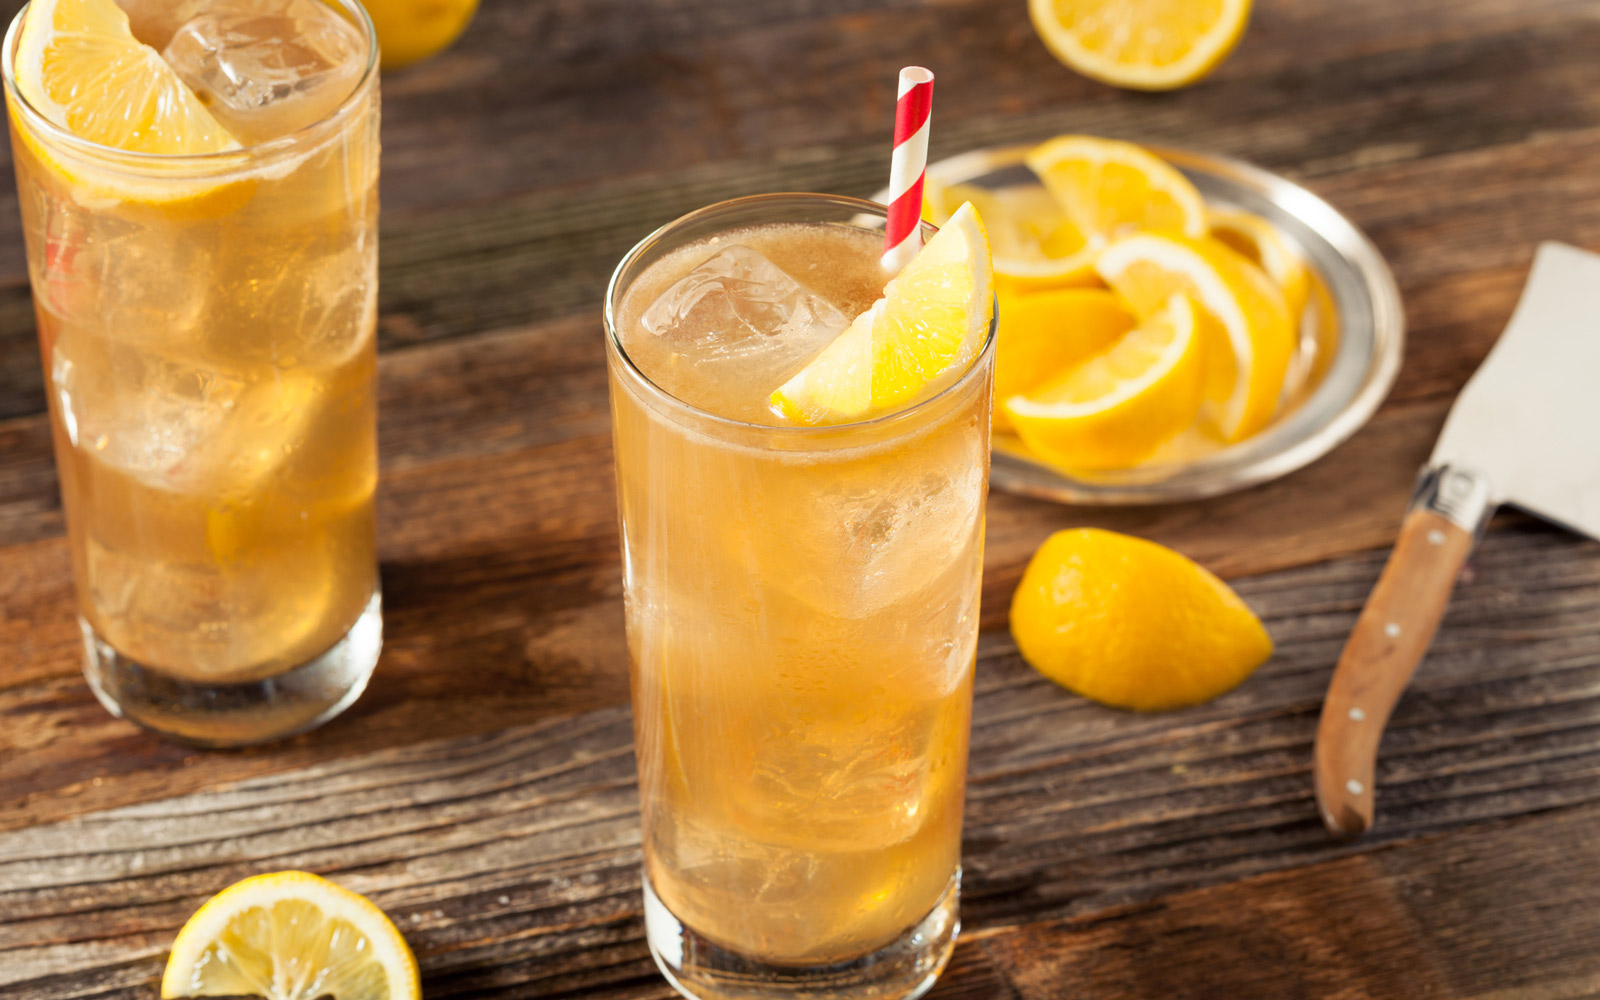 Applebee's Is Offering $1 Long Island Iced Teas All Month